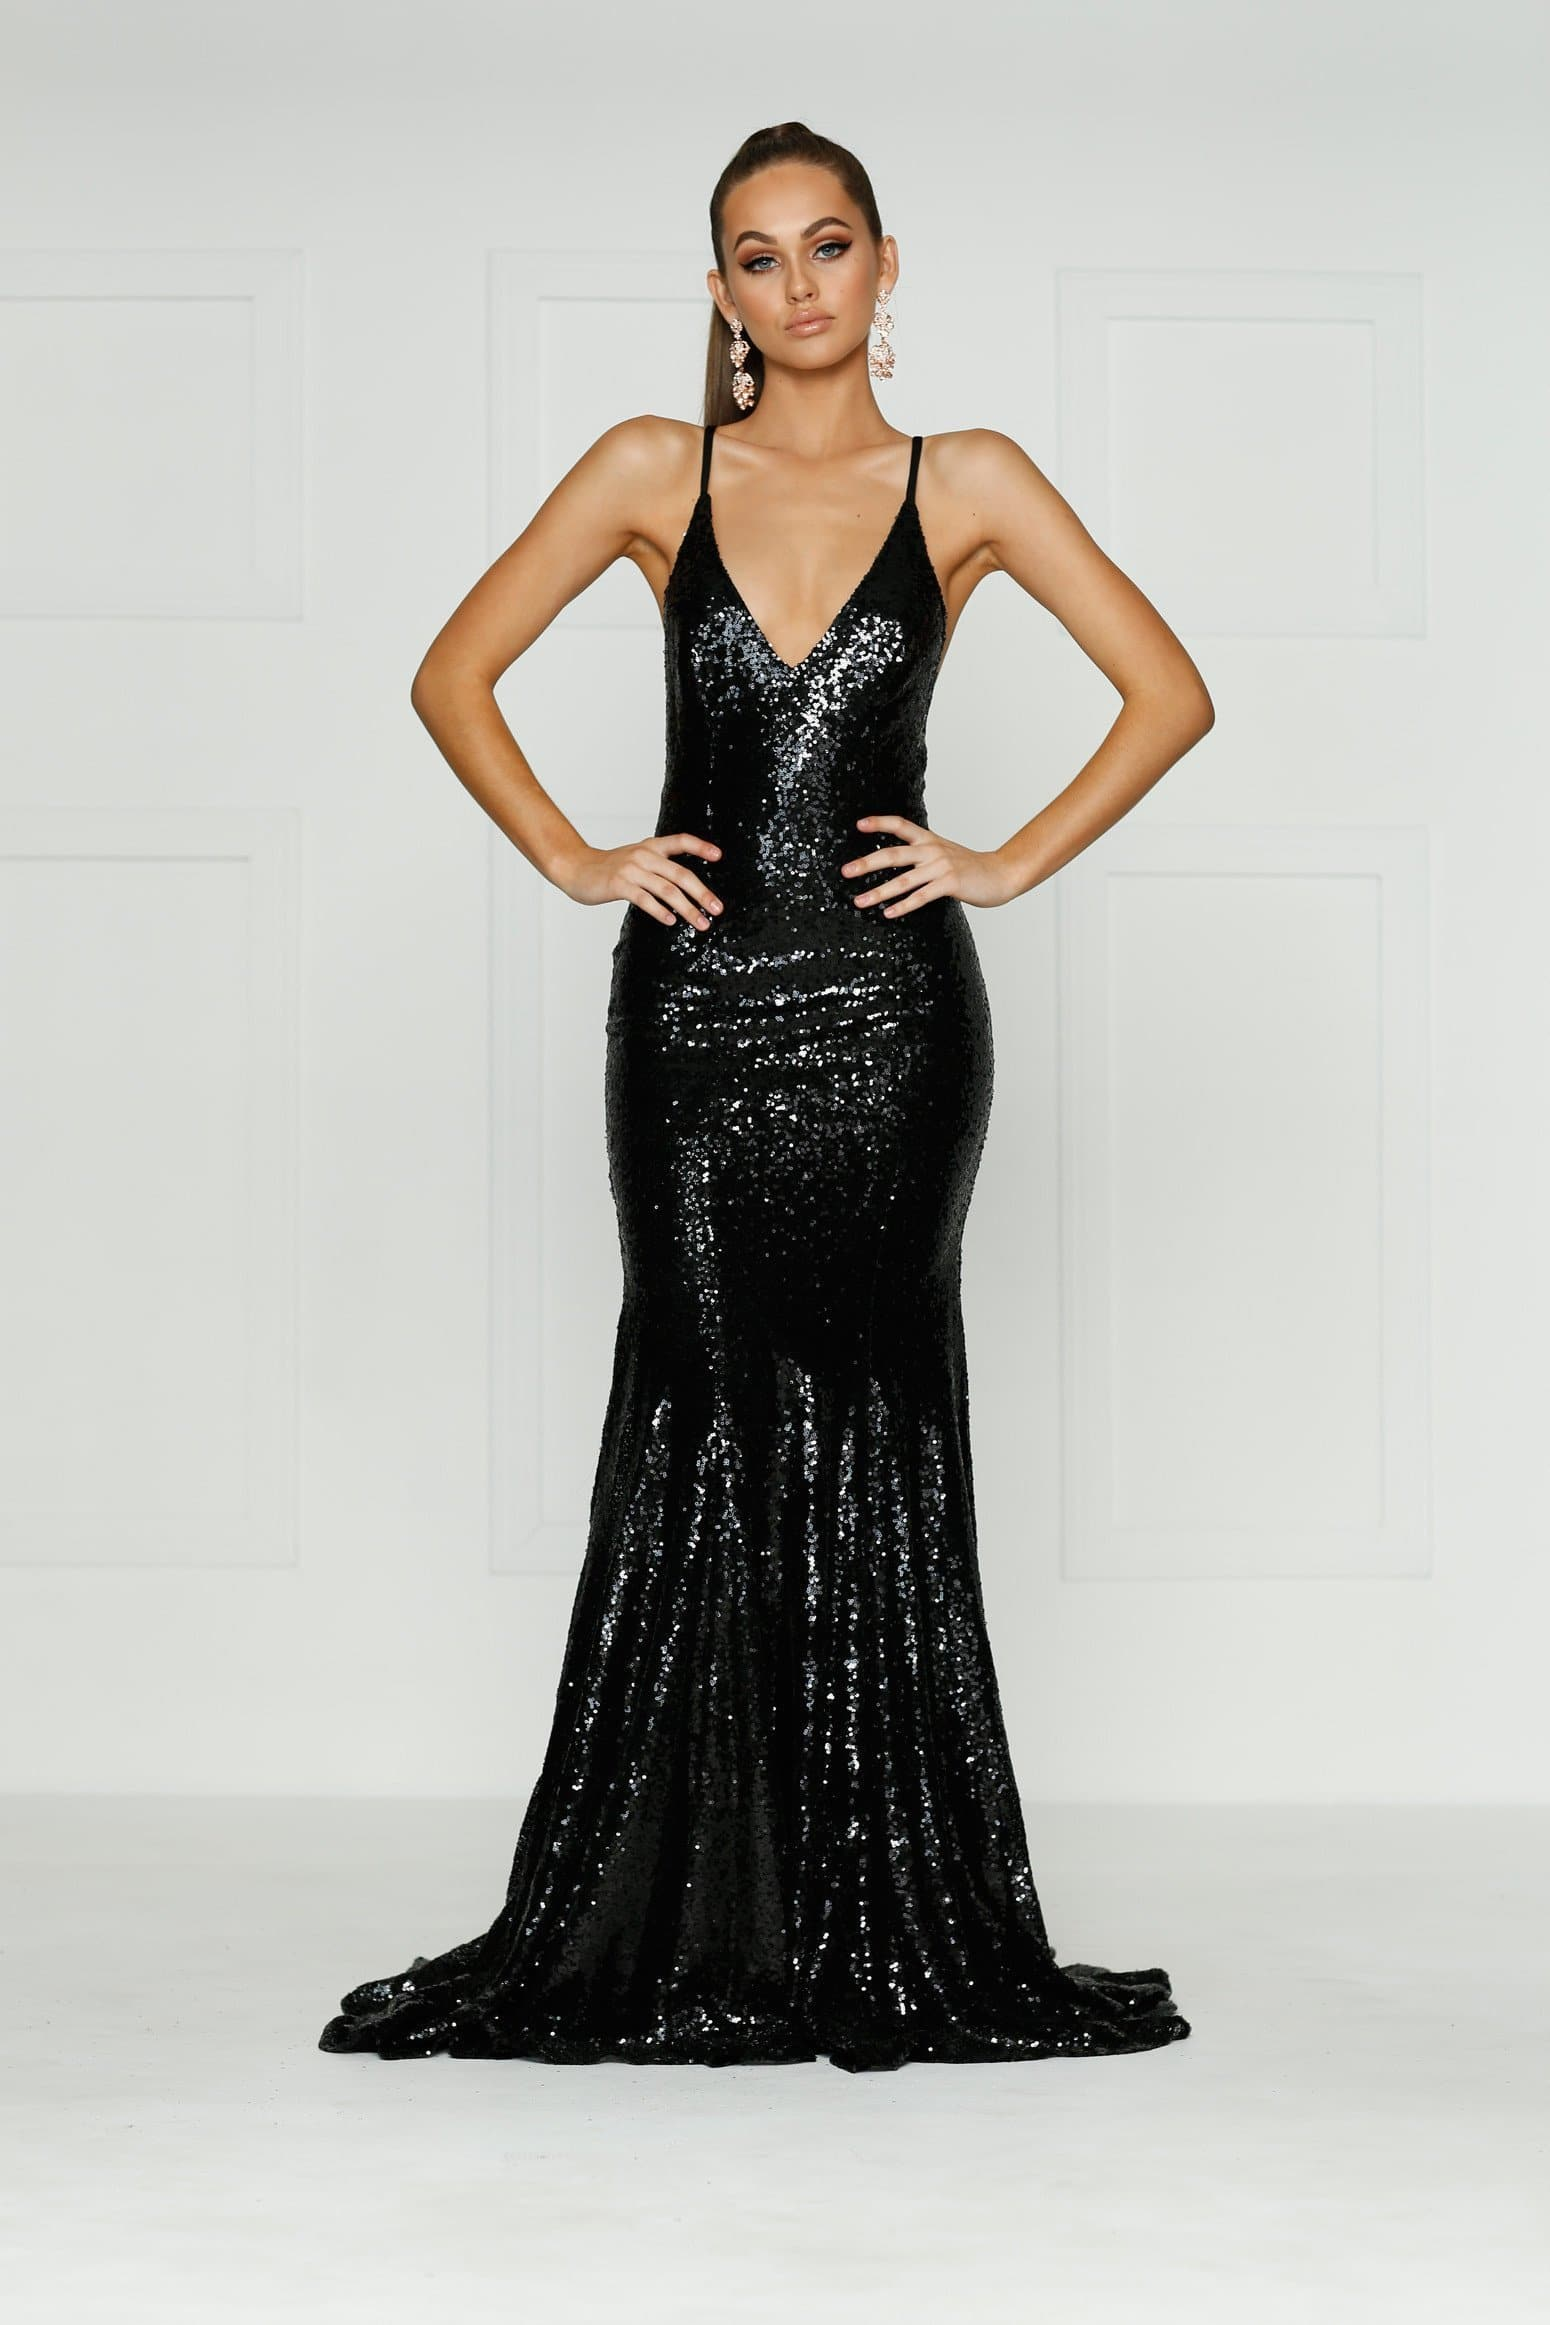 Kendall Formal Dress - Black Sequins V Neck Tie Back Full Length Gown